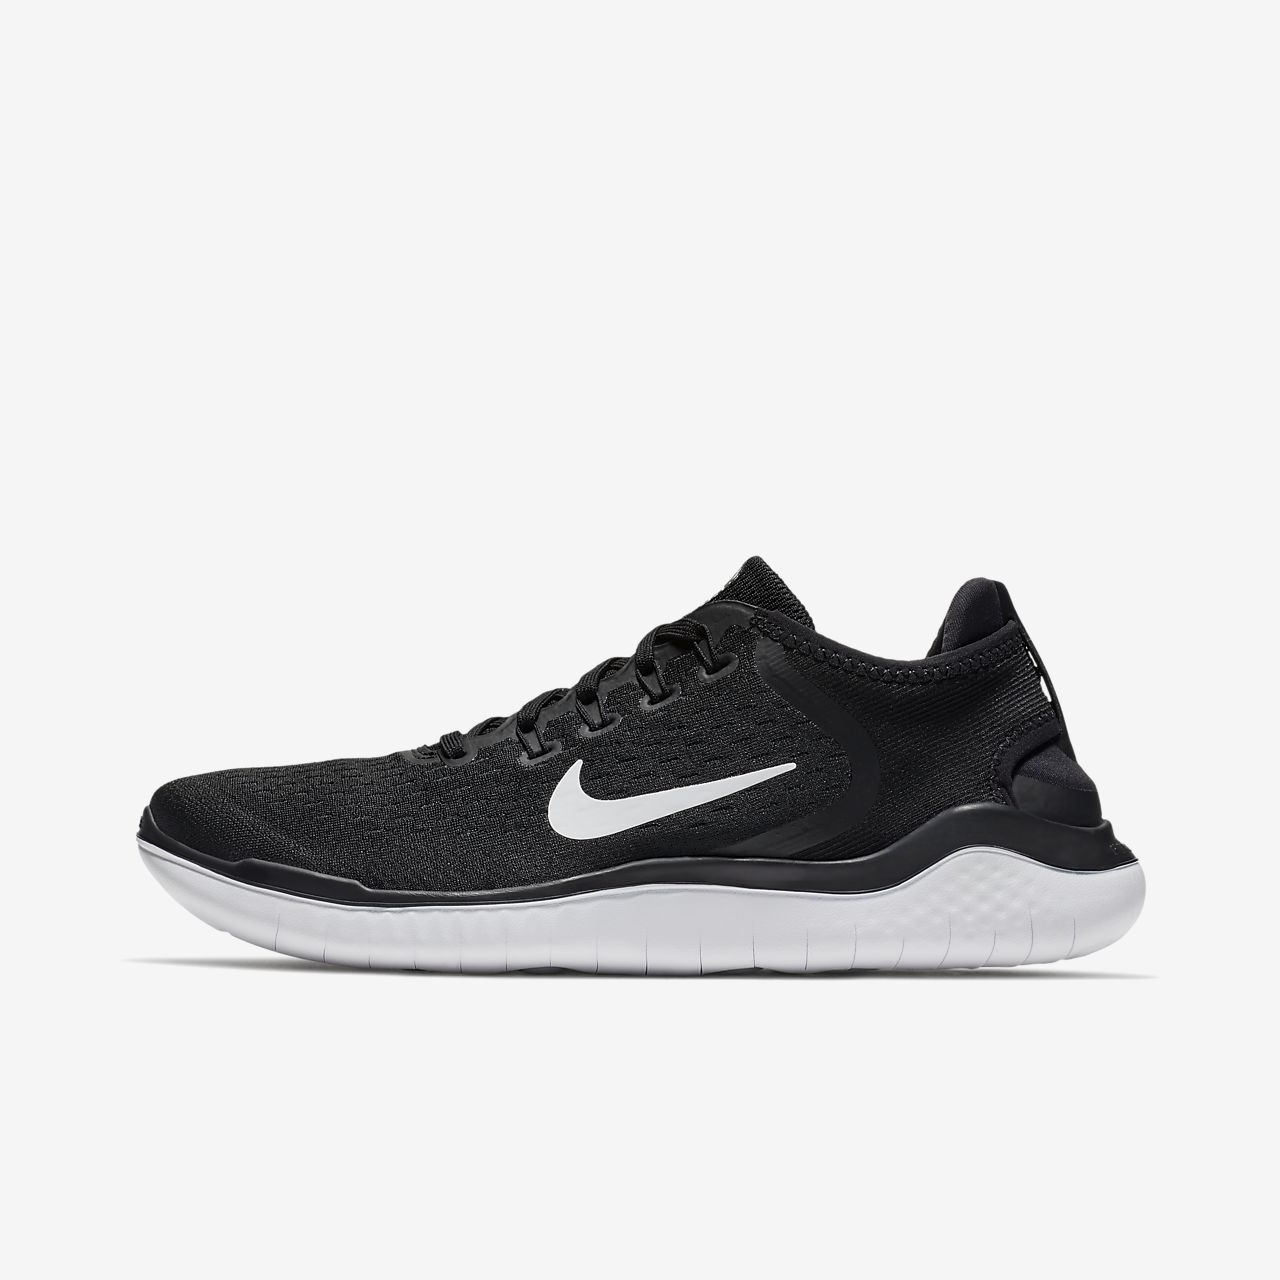 6fe88243c559 Nike Free RN 2018 Men s Running Shoe. Nike.com IN